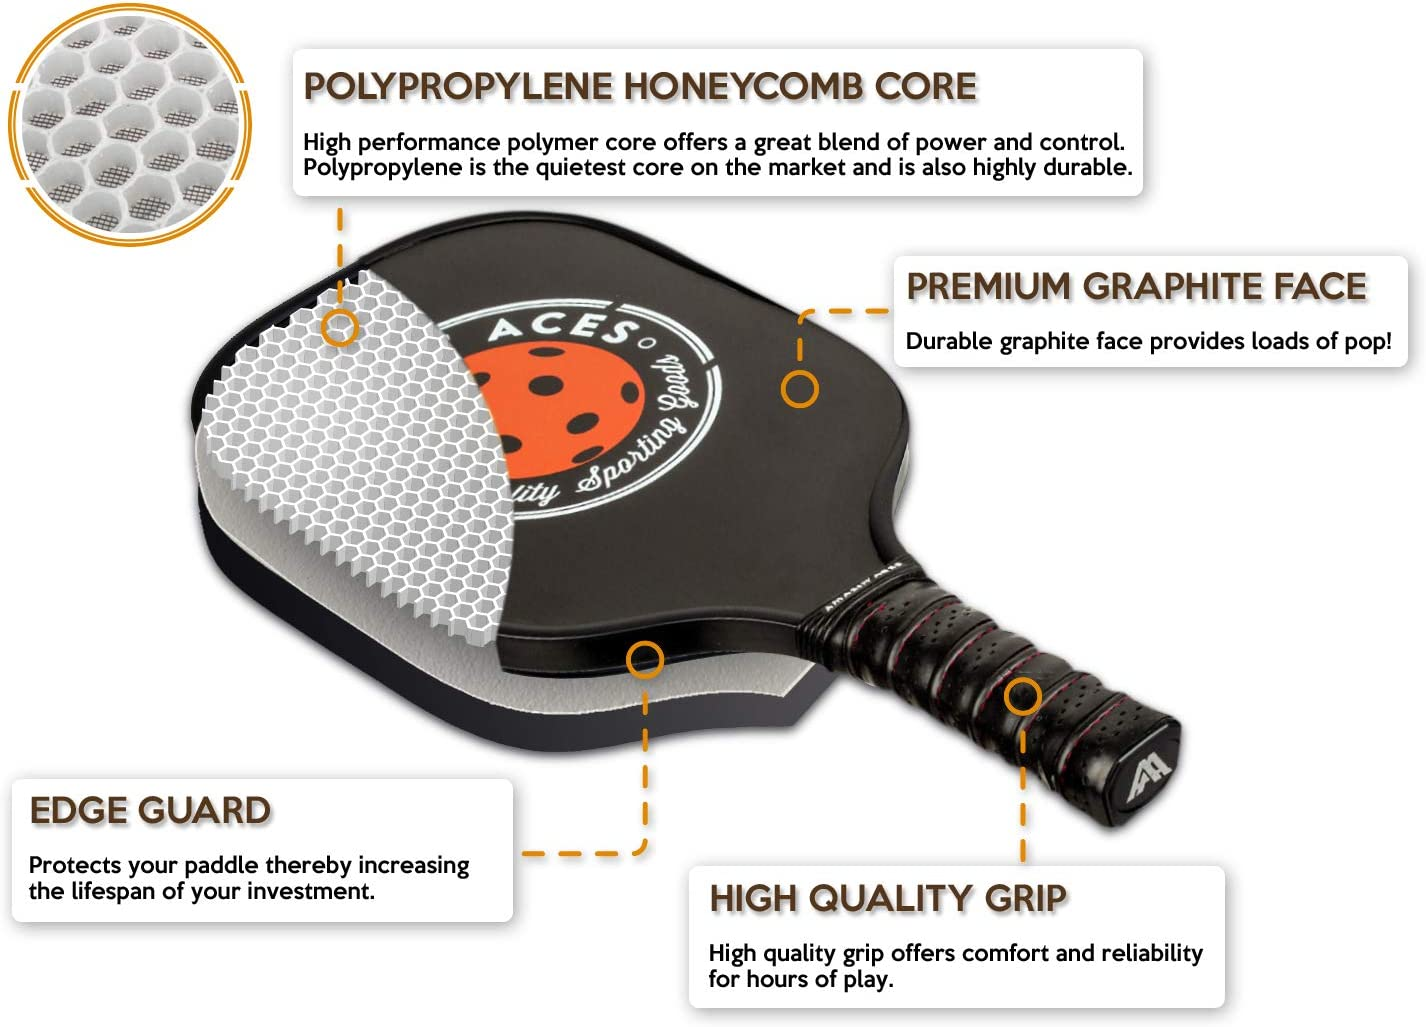 Amazin Aces Pickleball Paddle Set | Pickleball Set Includes Two Graphite Pickleball Paddles + Four Balls + One Mesh Carry Bag | Premium Rackets ...